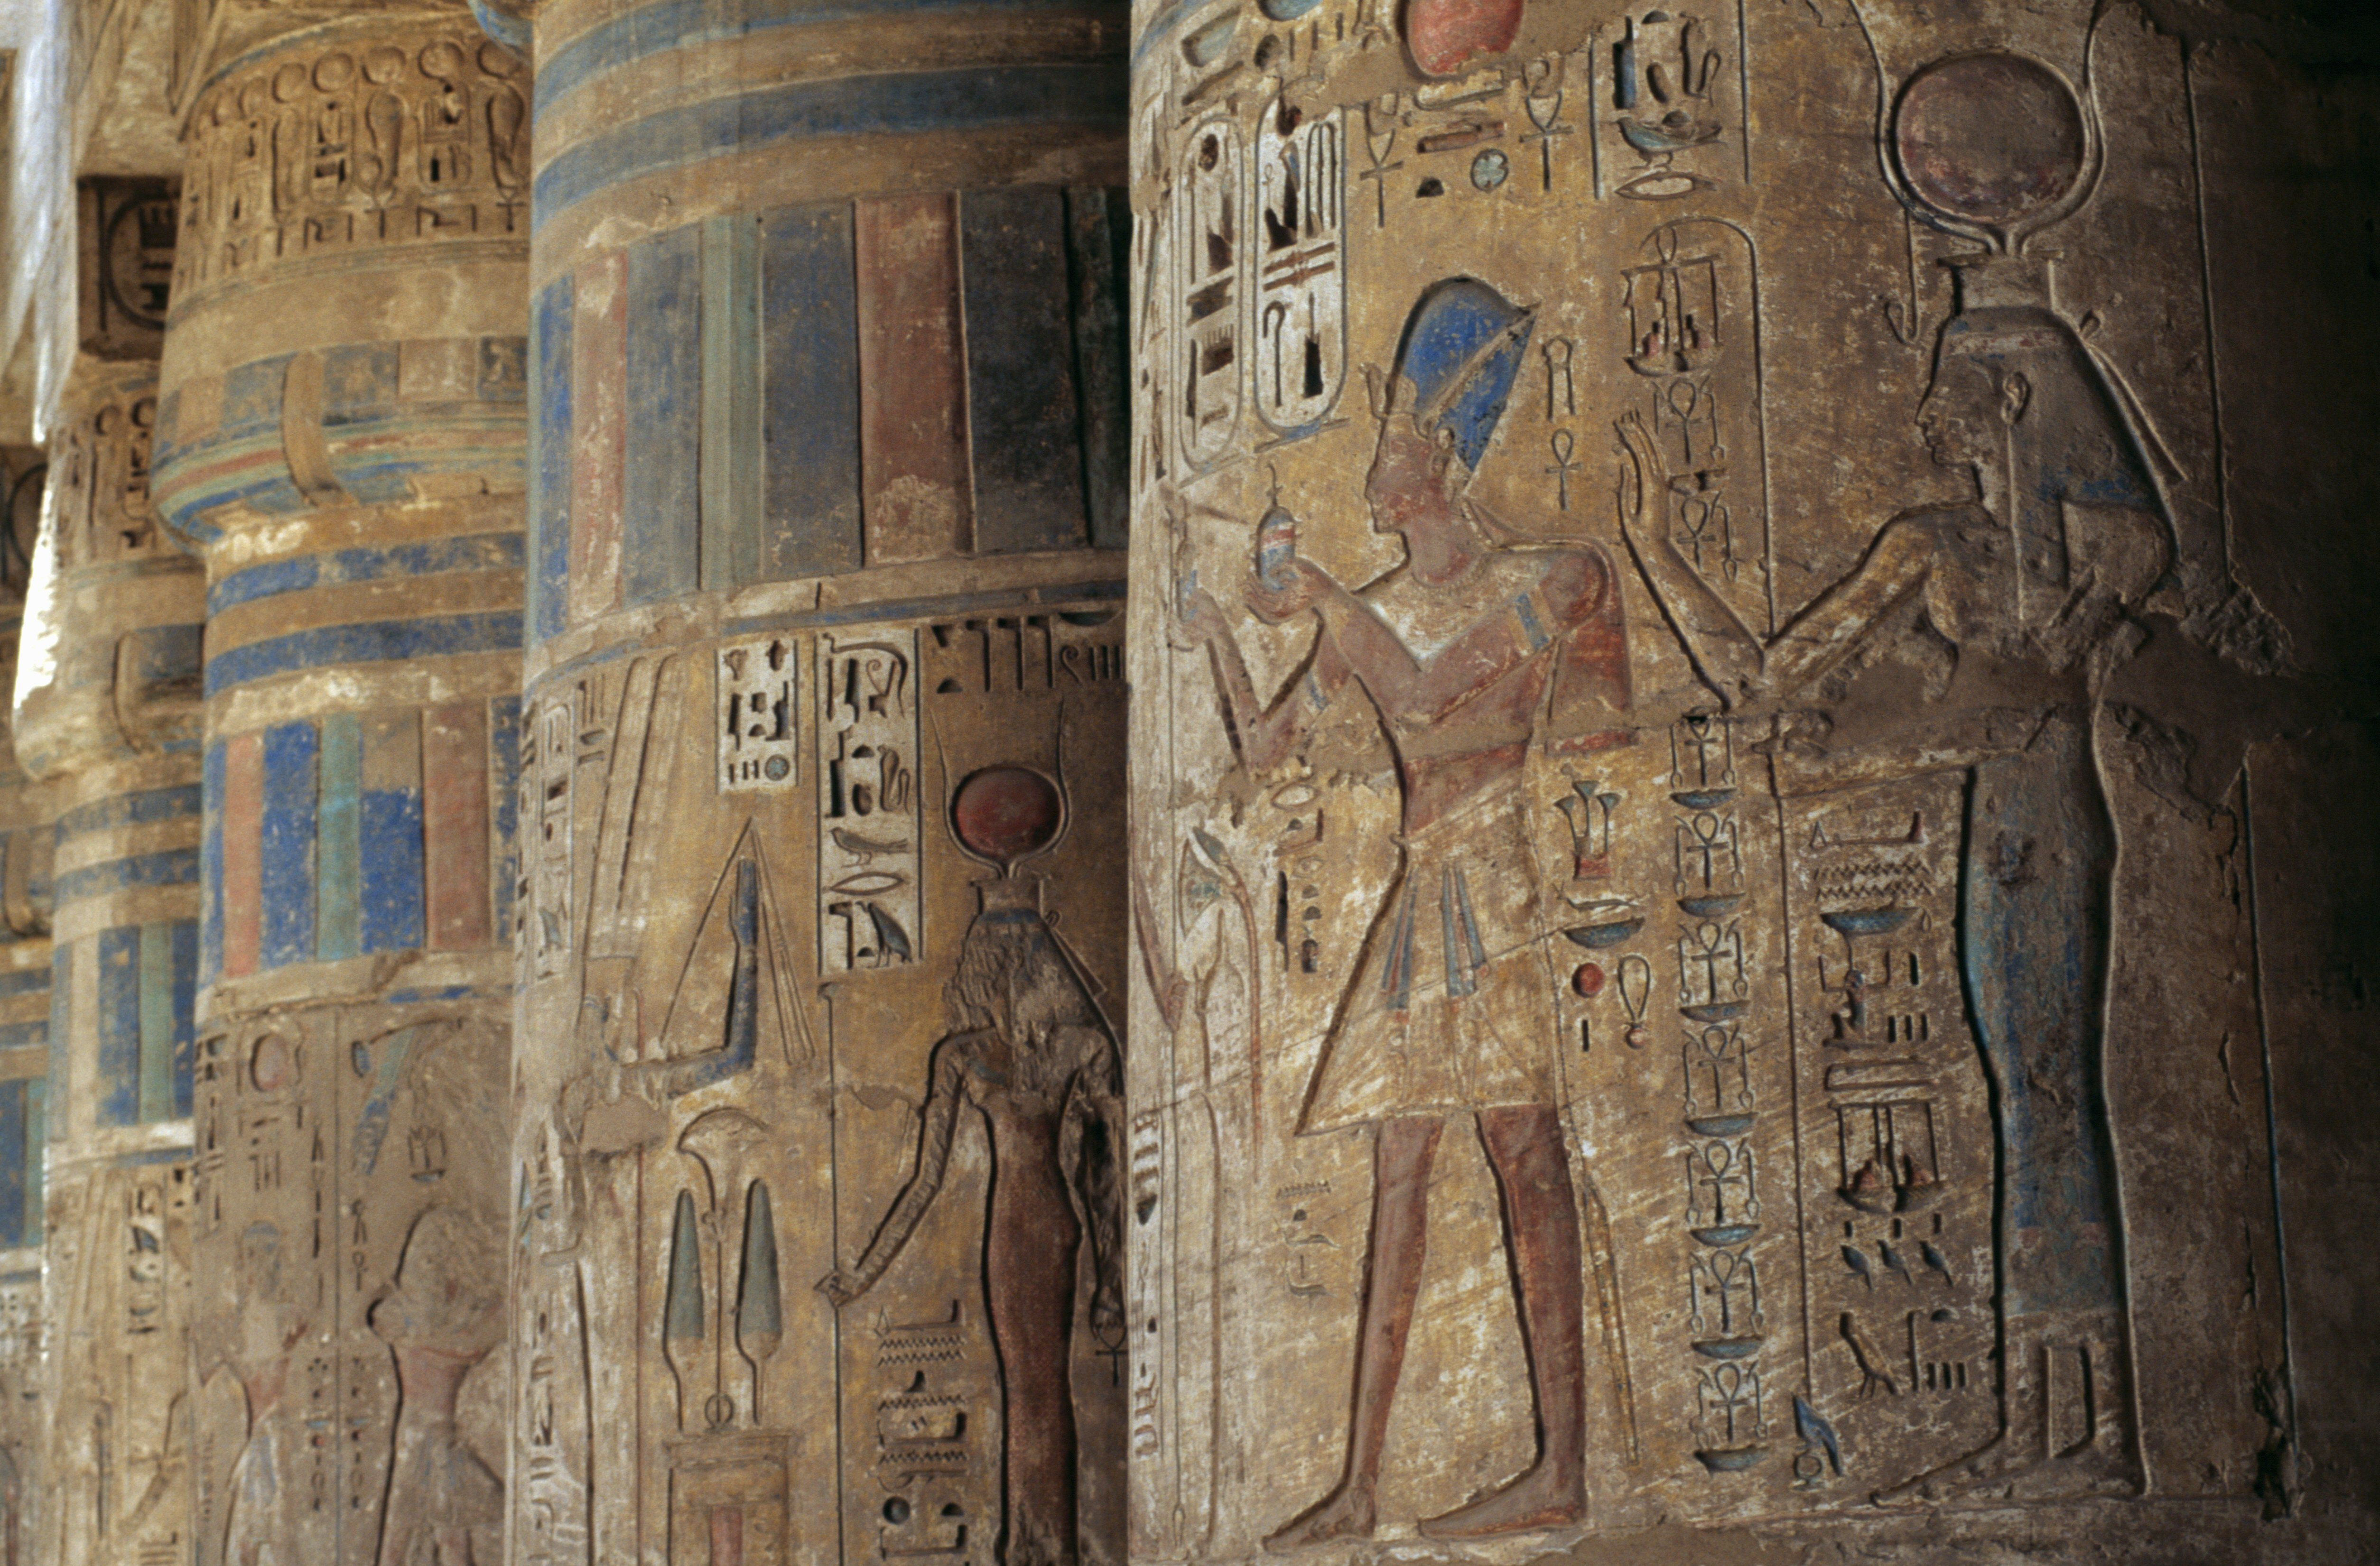 Detail of colorful images and symbols typically Egyptian in natuon carved into large stone shafts